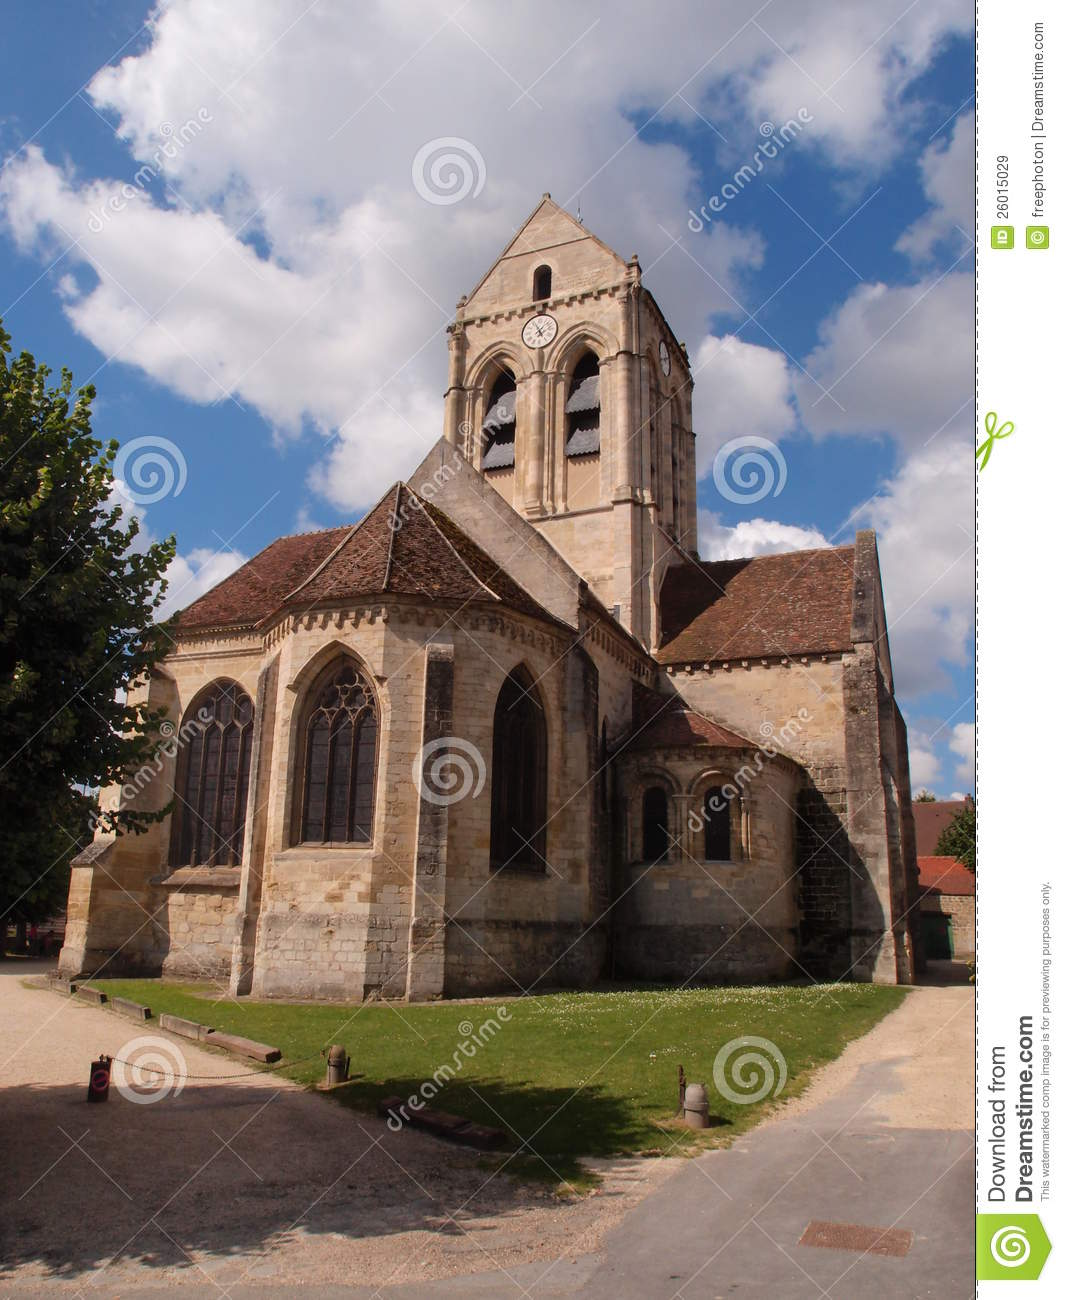 church of auvers sur oise as painted by van gogh stock image image of gogh france 26015029. Black Bedroom Furniture Sets. Home Design Ideas